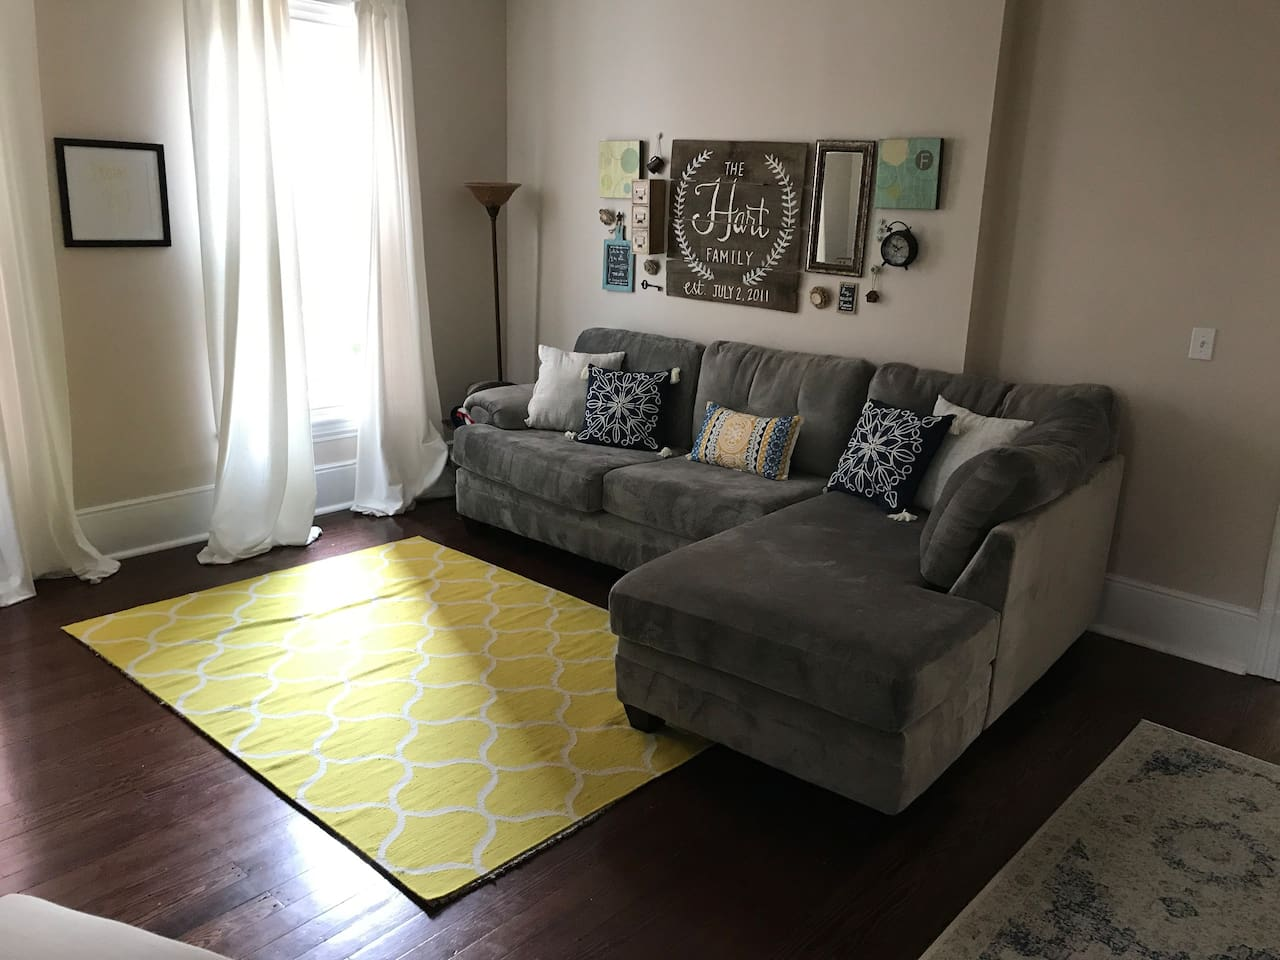 Comfortable living room. Couch can sleep 2 adults comfortably.